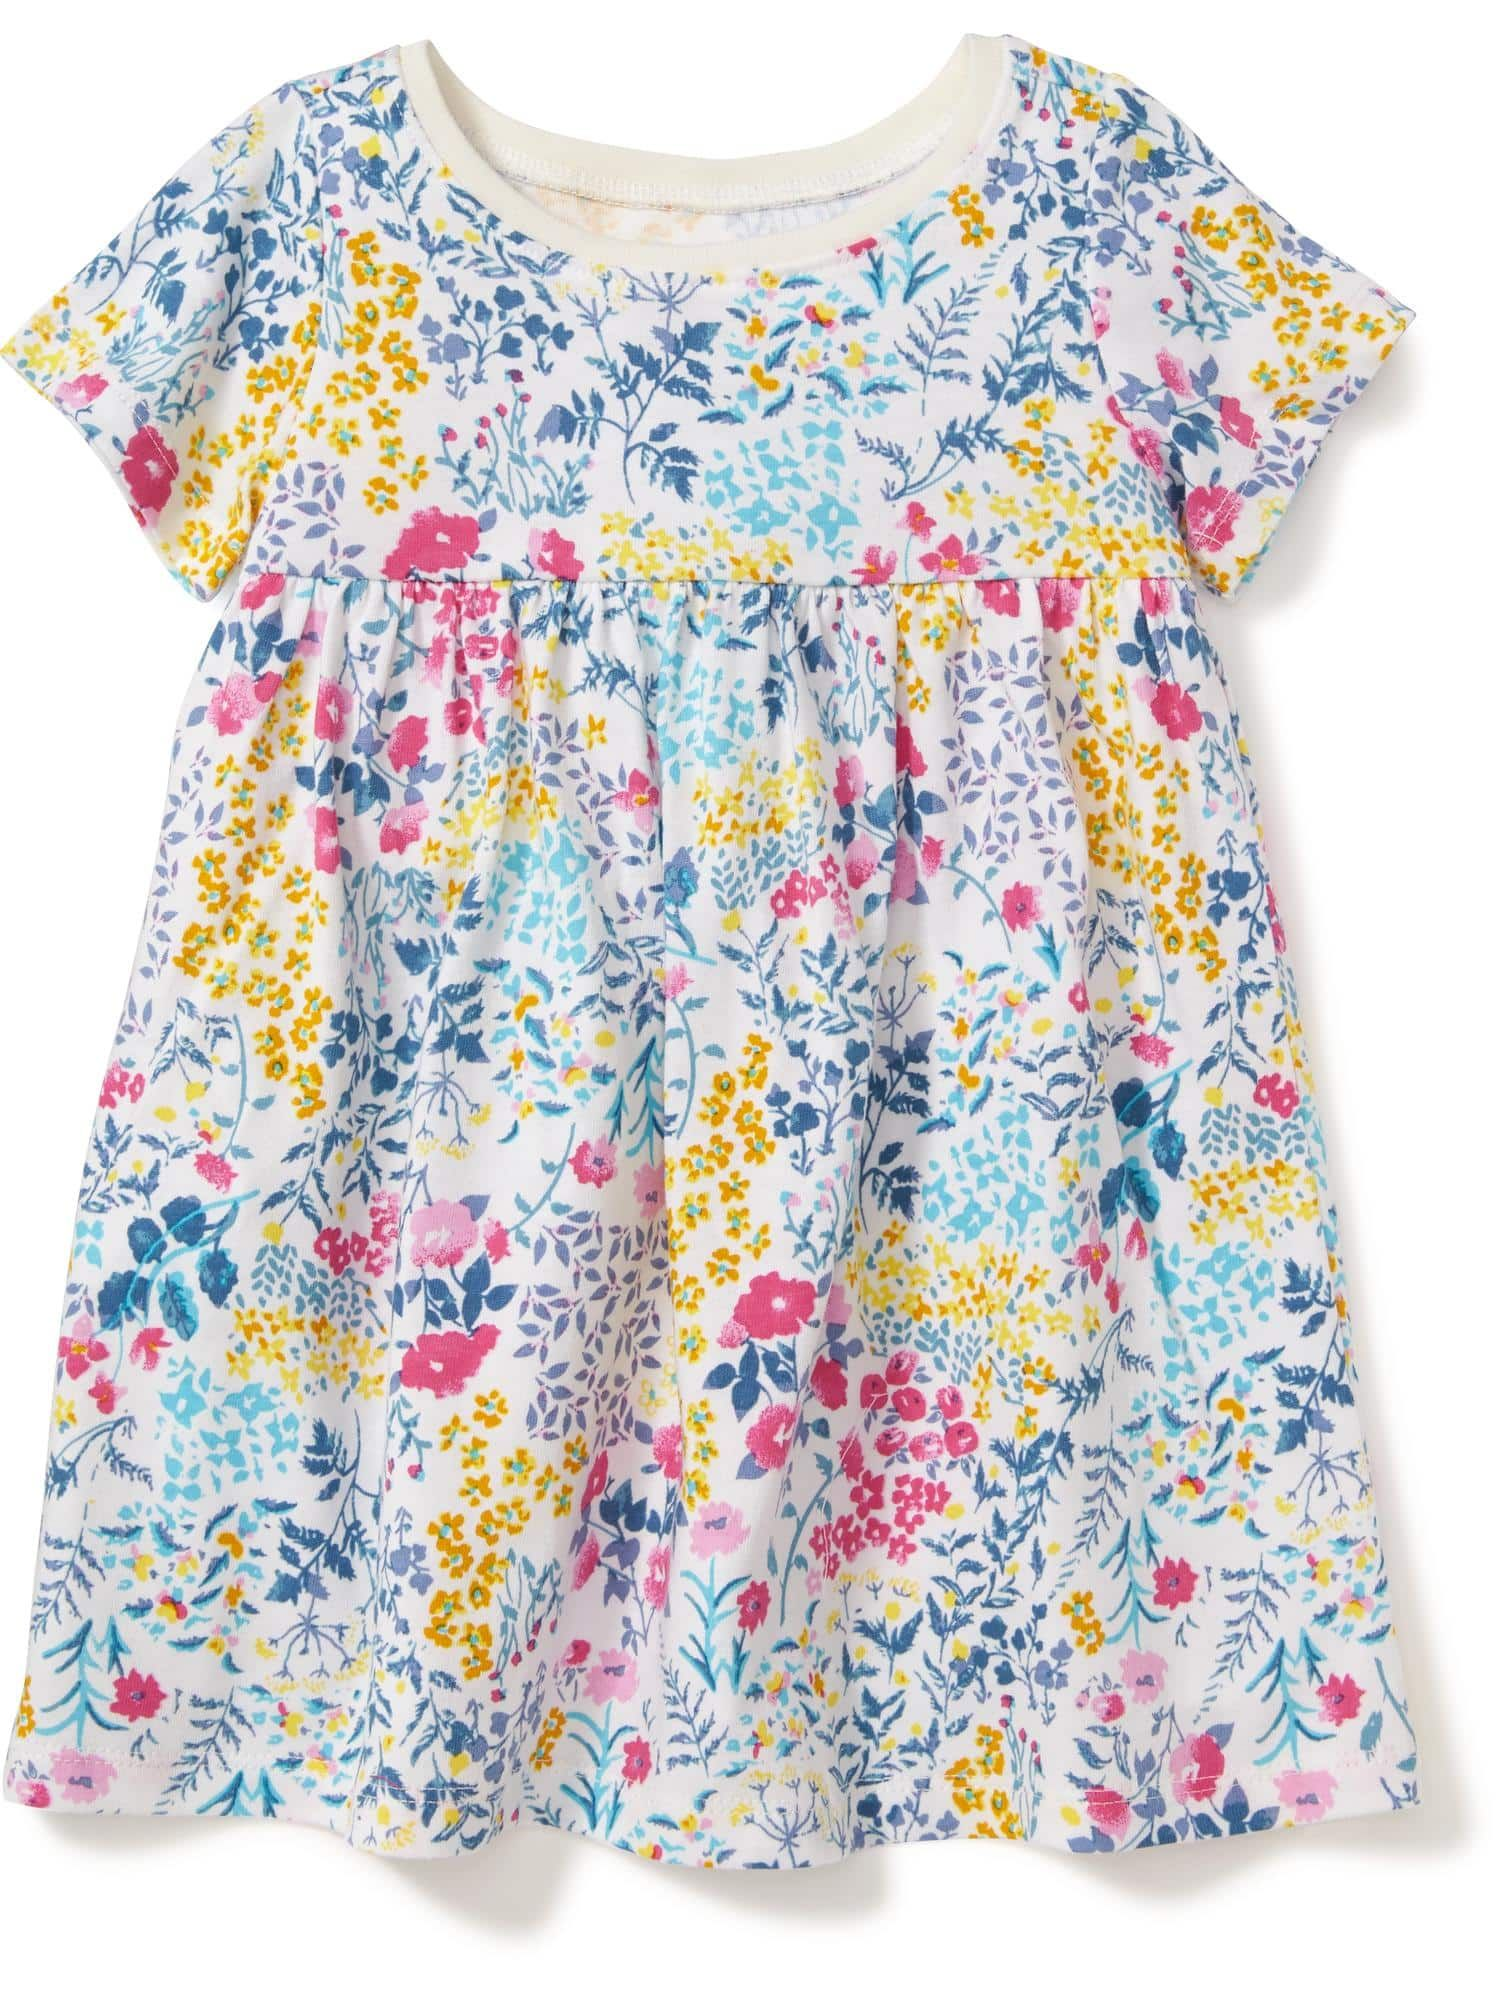 Empire Waist Jersey Dress for Baby Old Navy